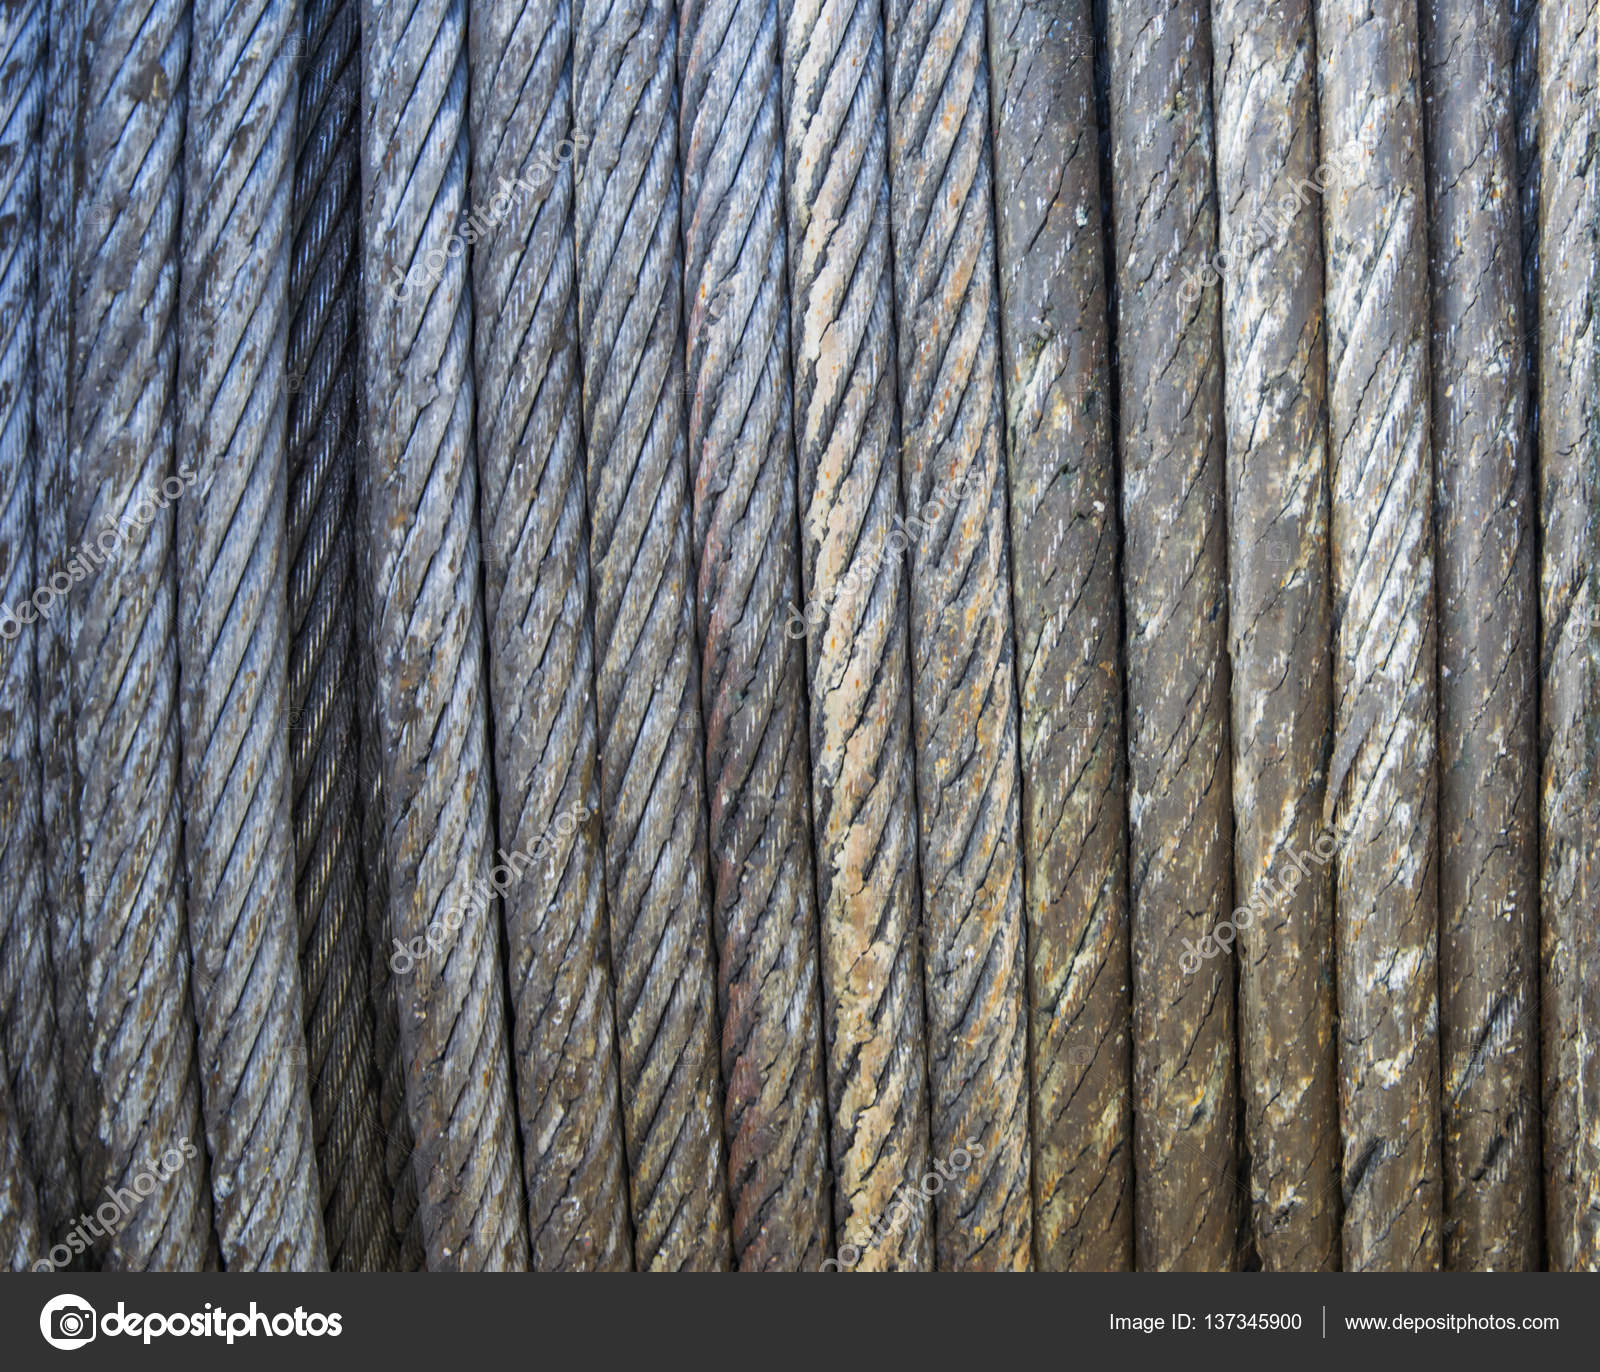 Wire rope texture - heavy duty steel wire cable or rope as ...